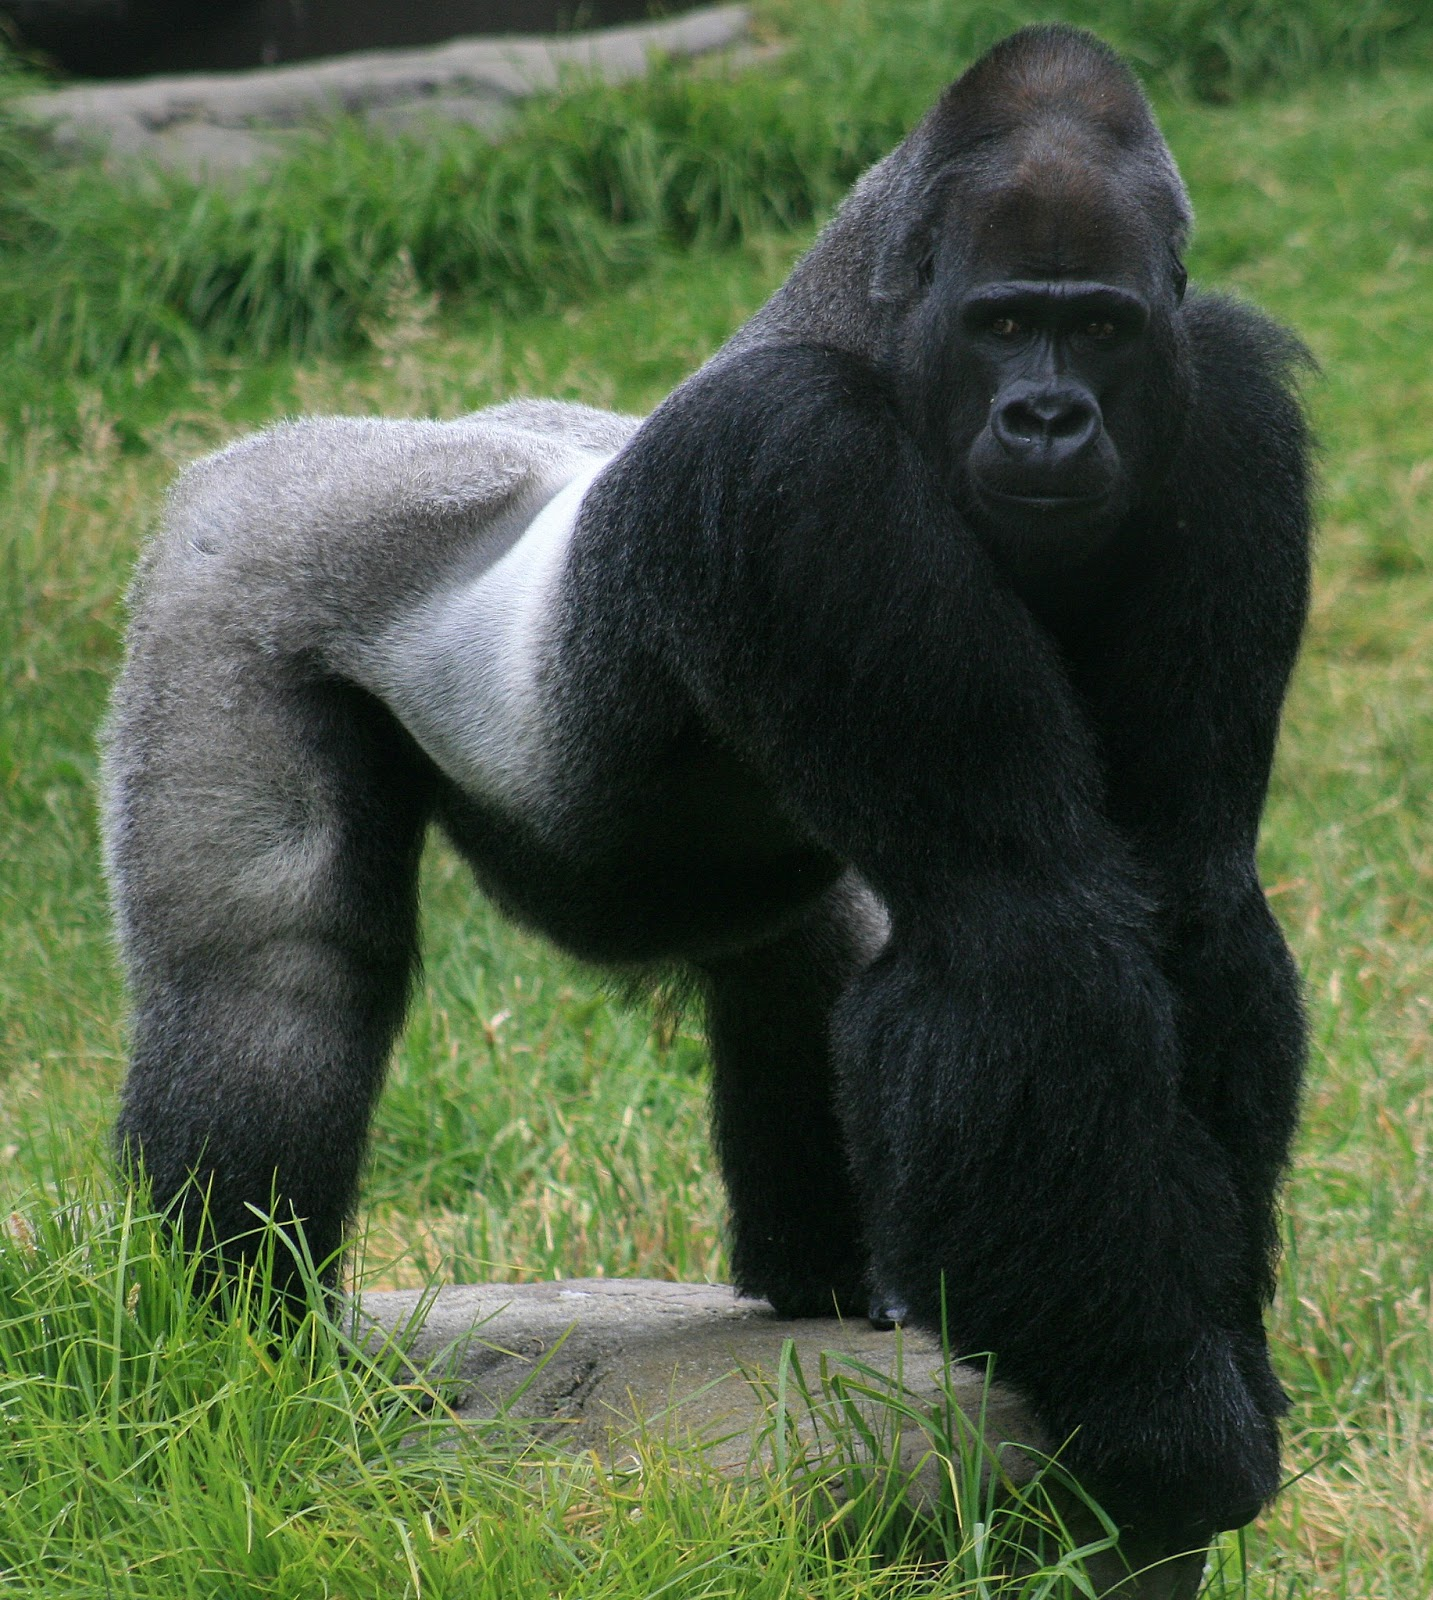 Gorillas Interesting Facts And Pictures | All Wildlife ...